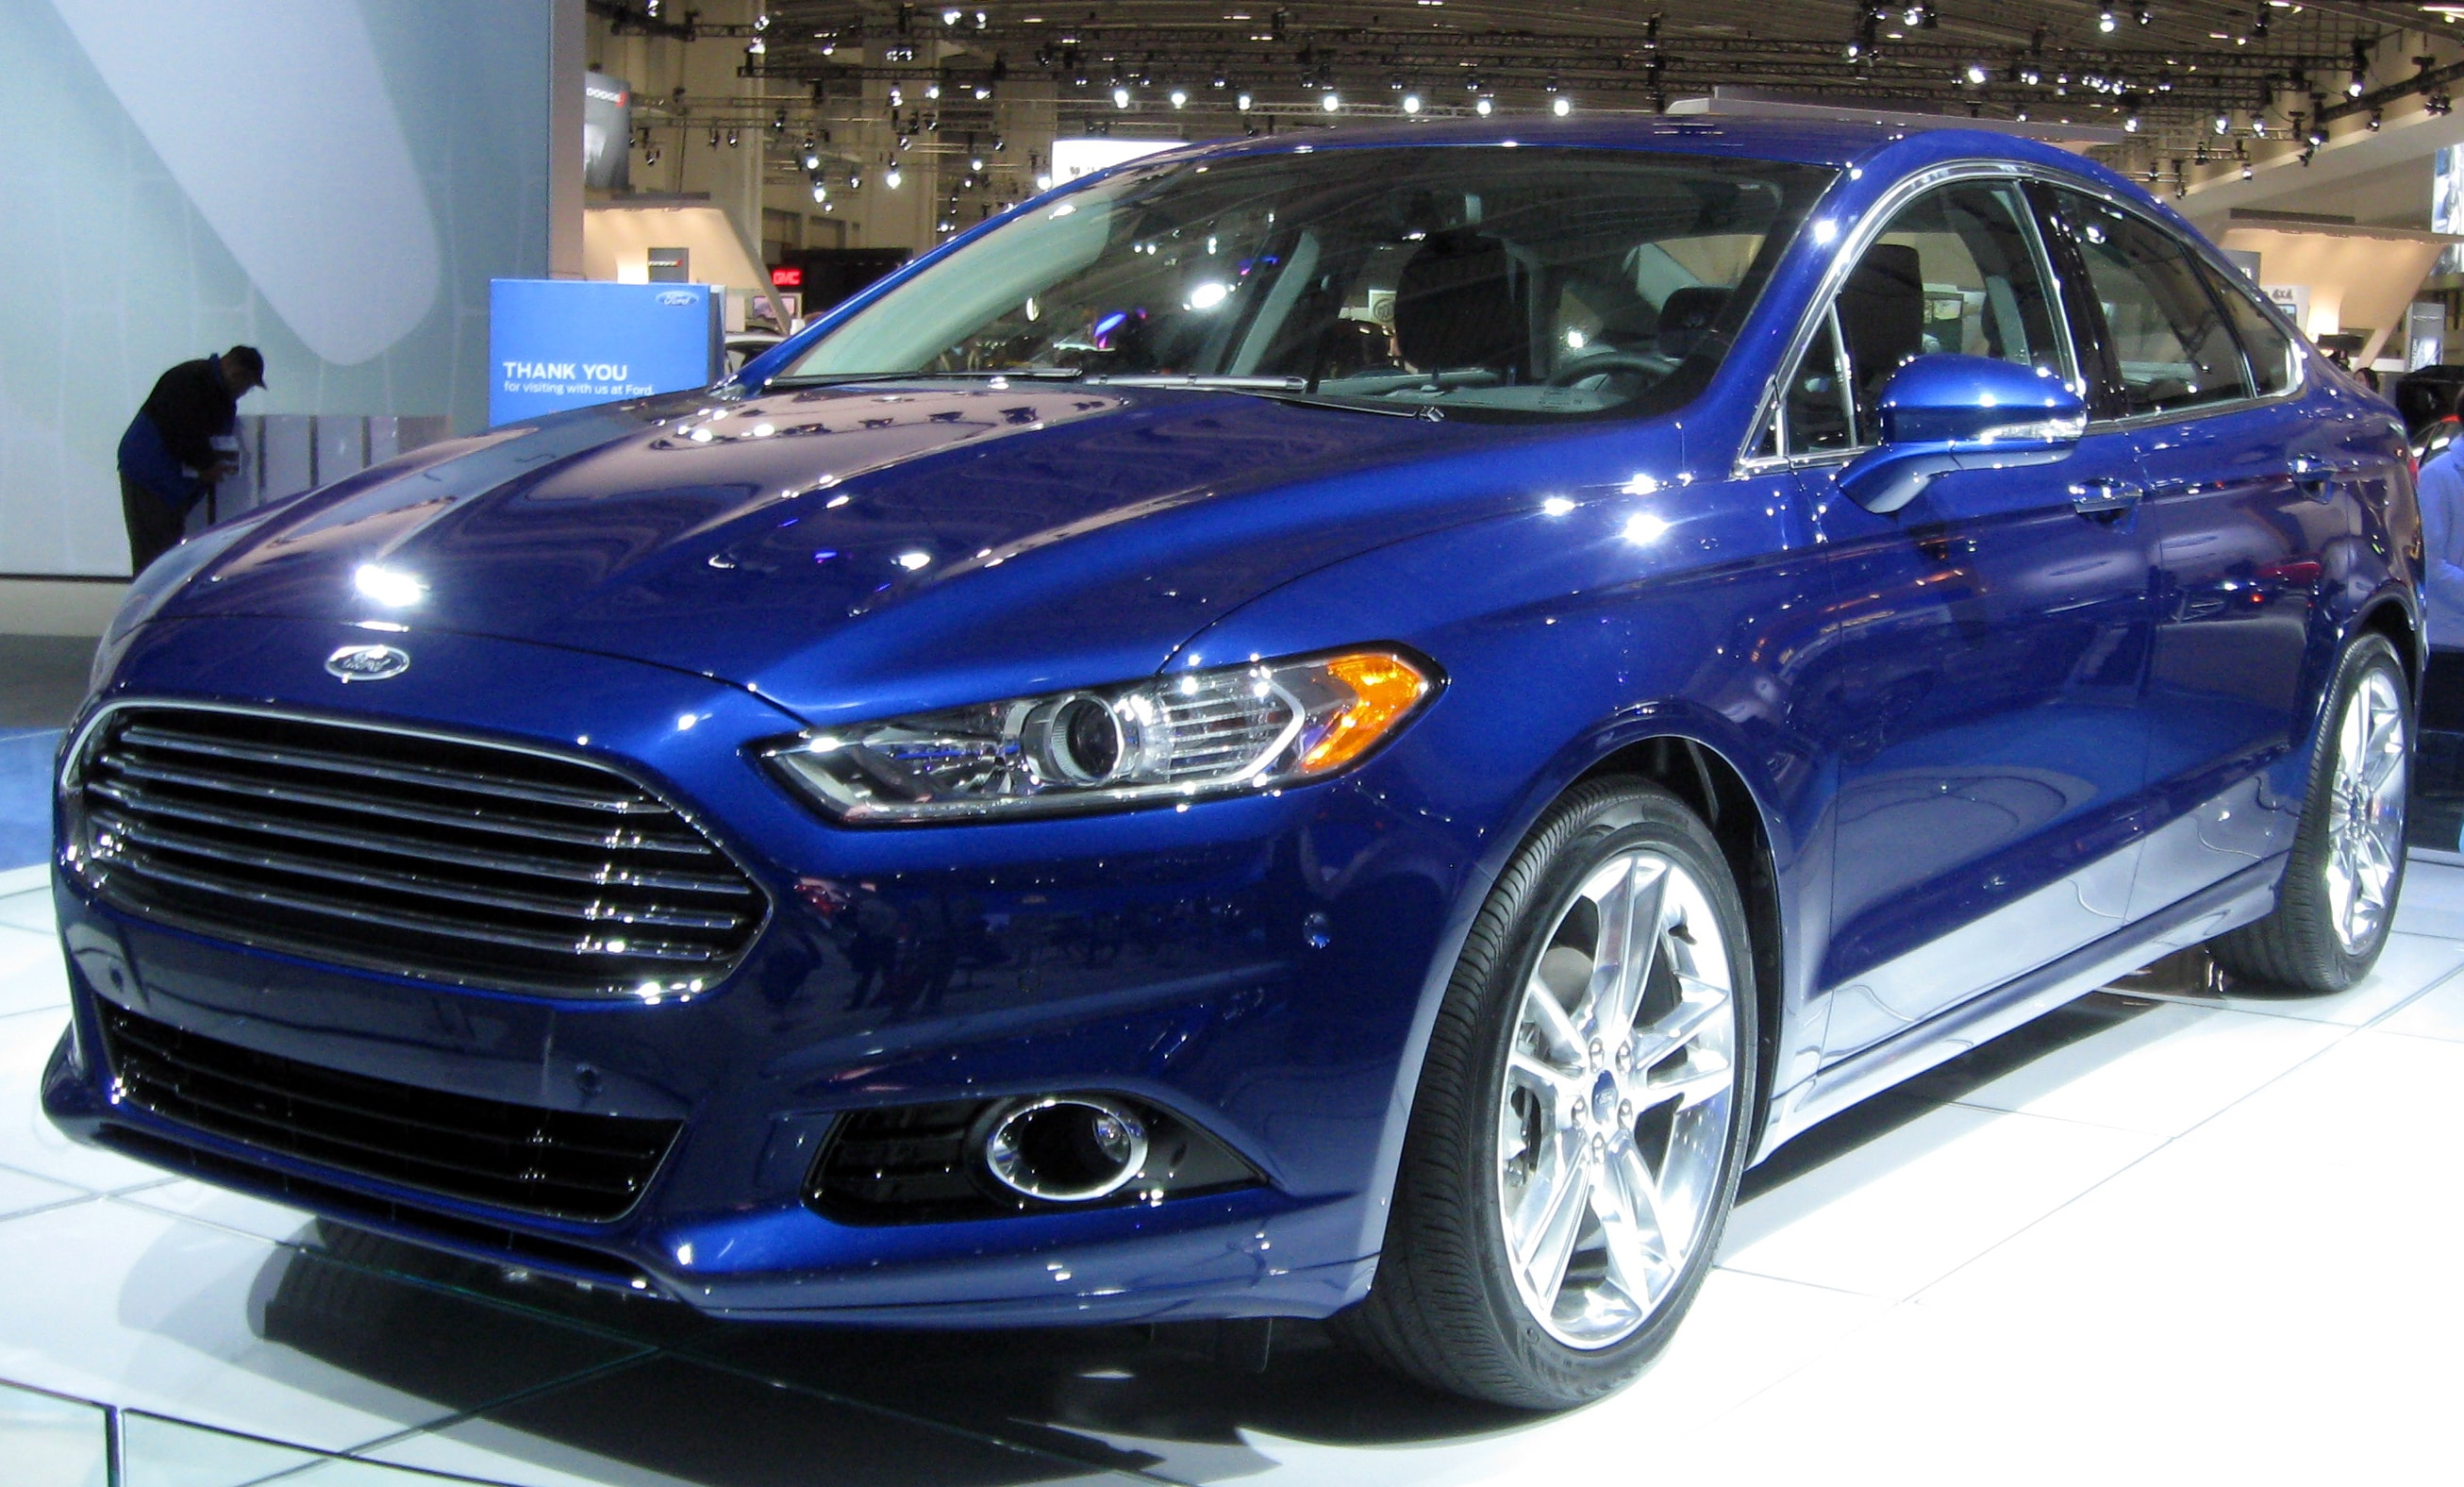 2013 Ford Fusion Full hd wallpapers